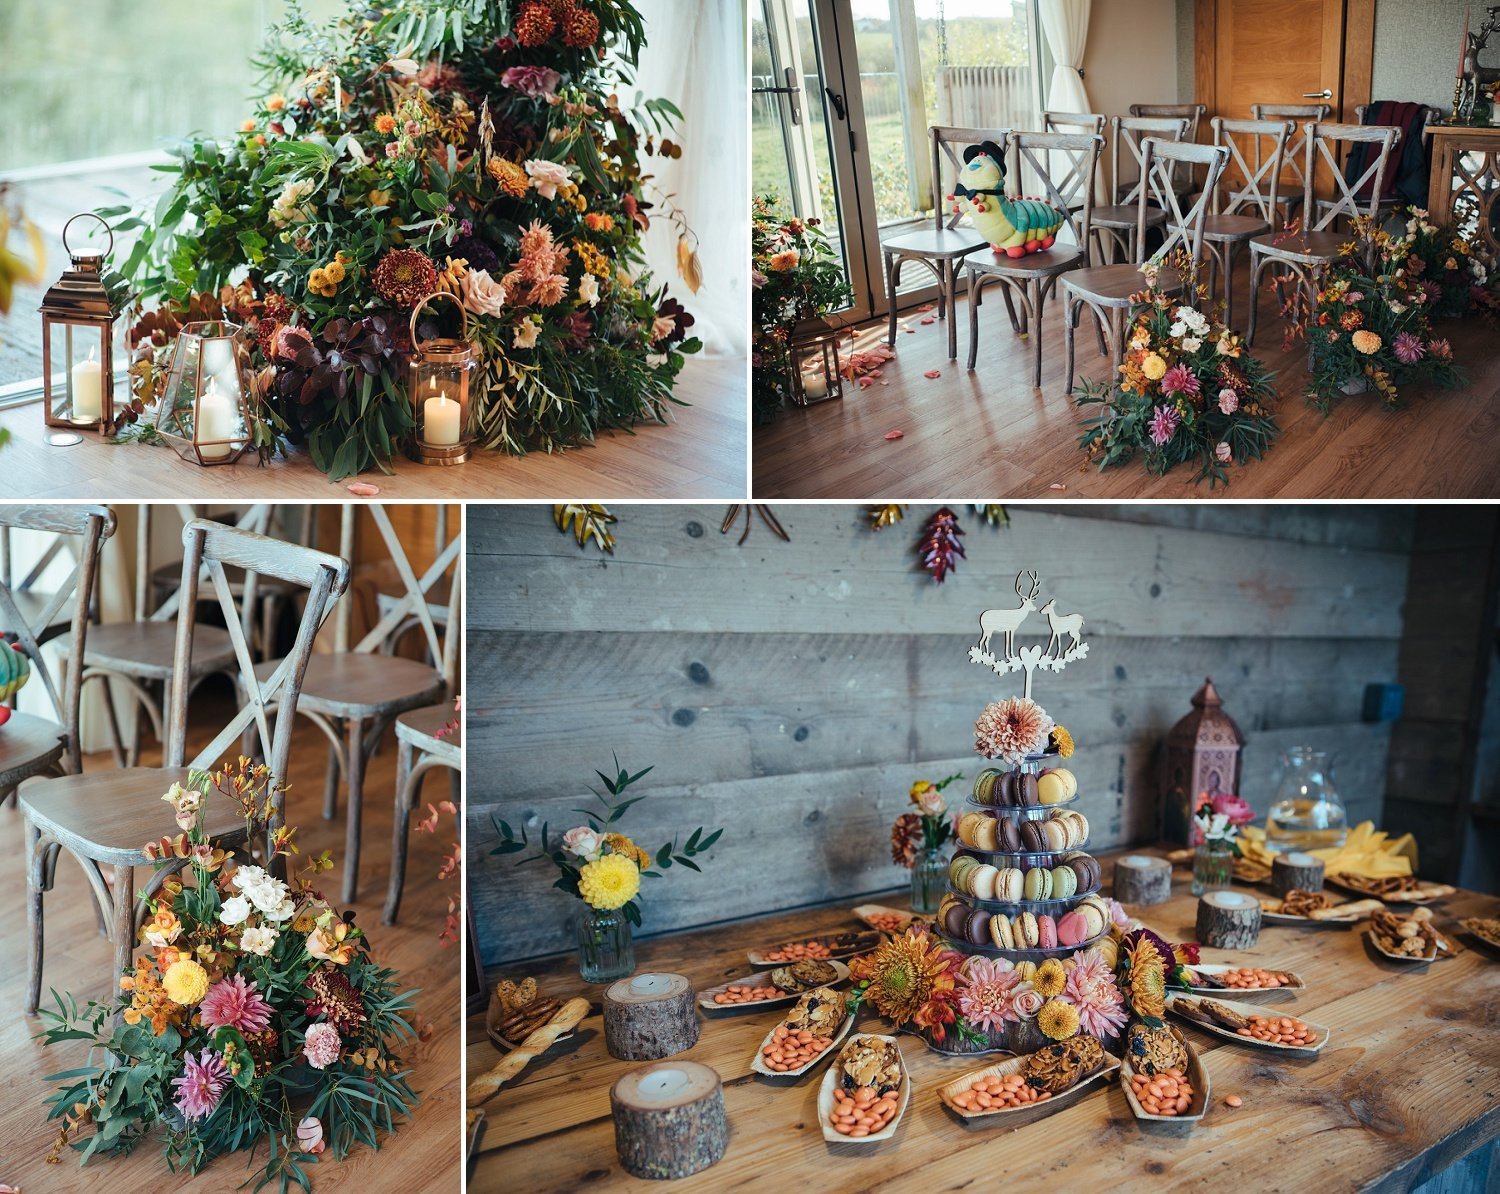 Autumnal floral arrangements fora wedding ceremony by Jenny Fleur, a florist from Herefordshire, UK